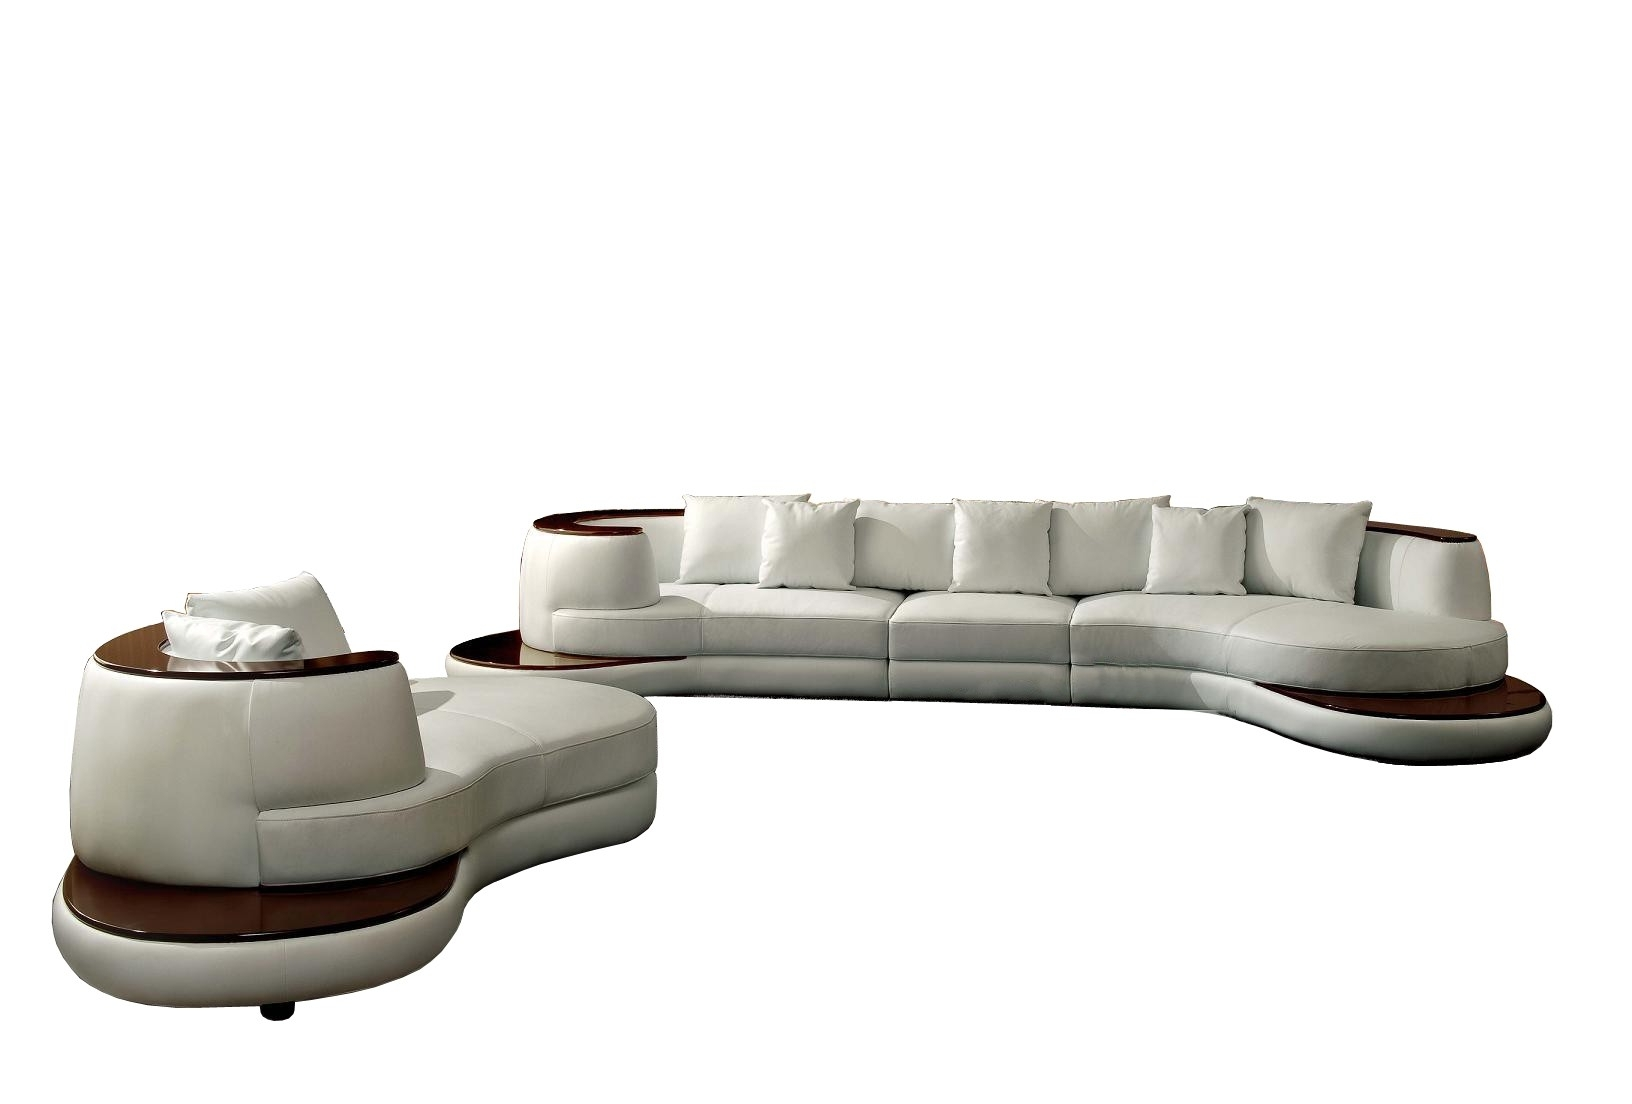 Popular Rounded Sofas Within Divani Casa Rodus – Rounded Corner Leather Sectional Sofa With (View 10 of 20)